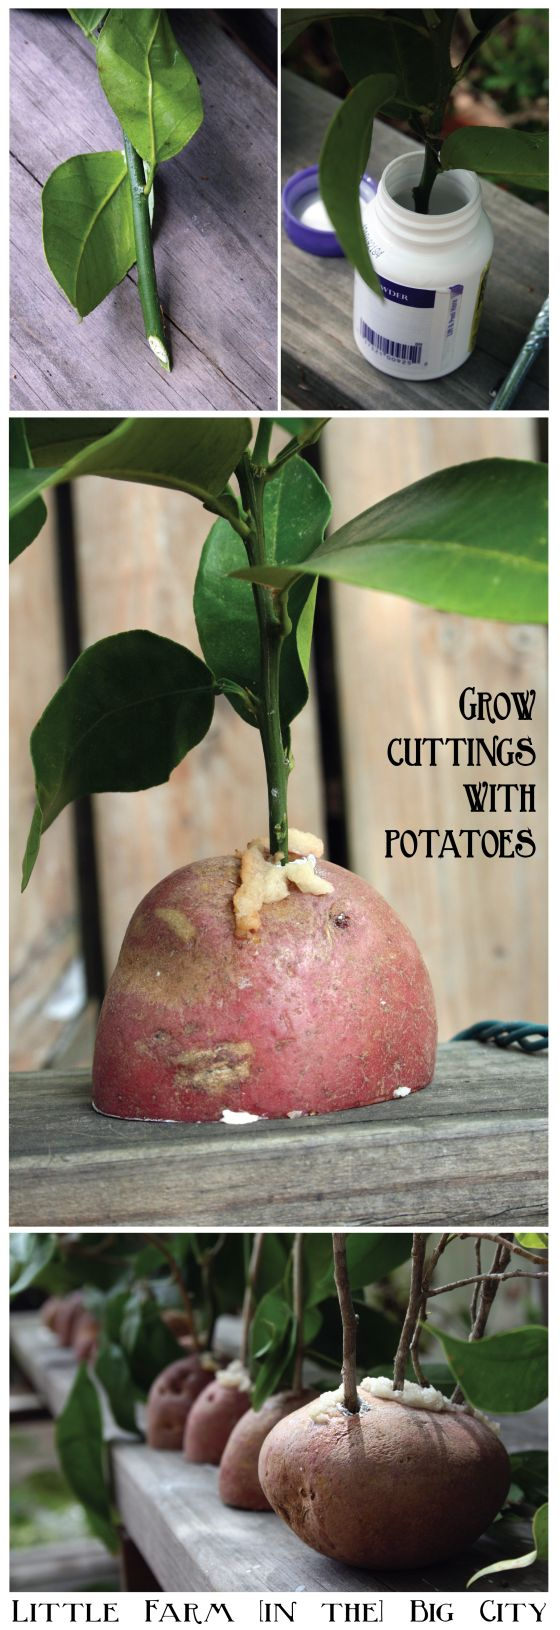 grow cuttings with potatoes...